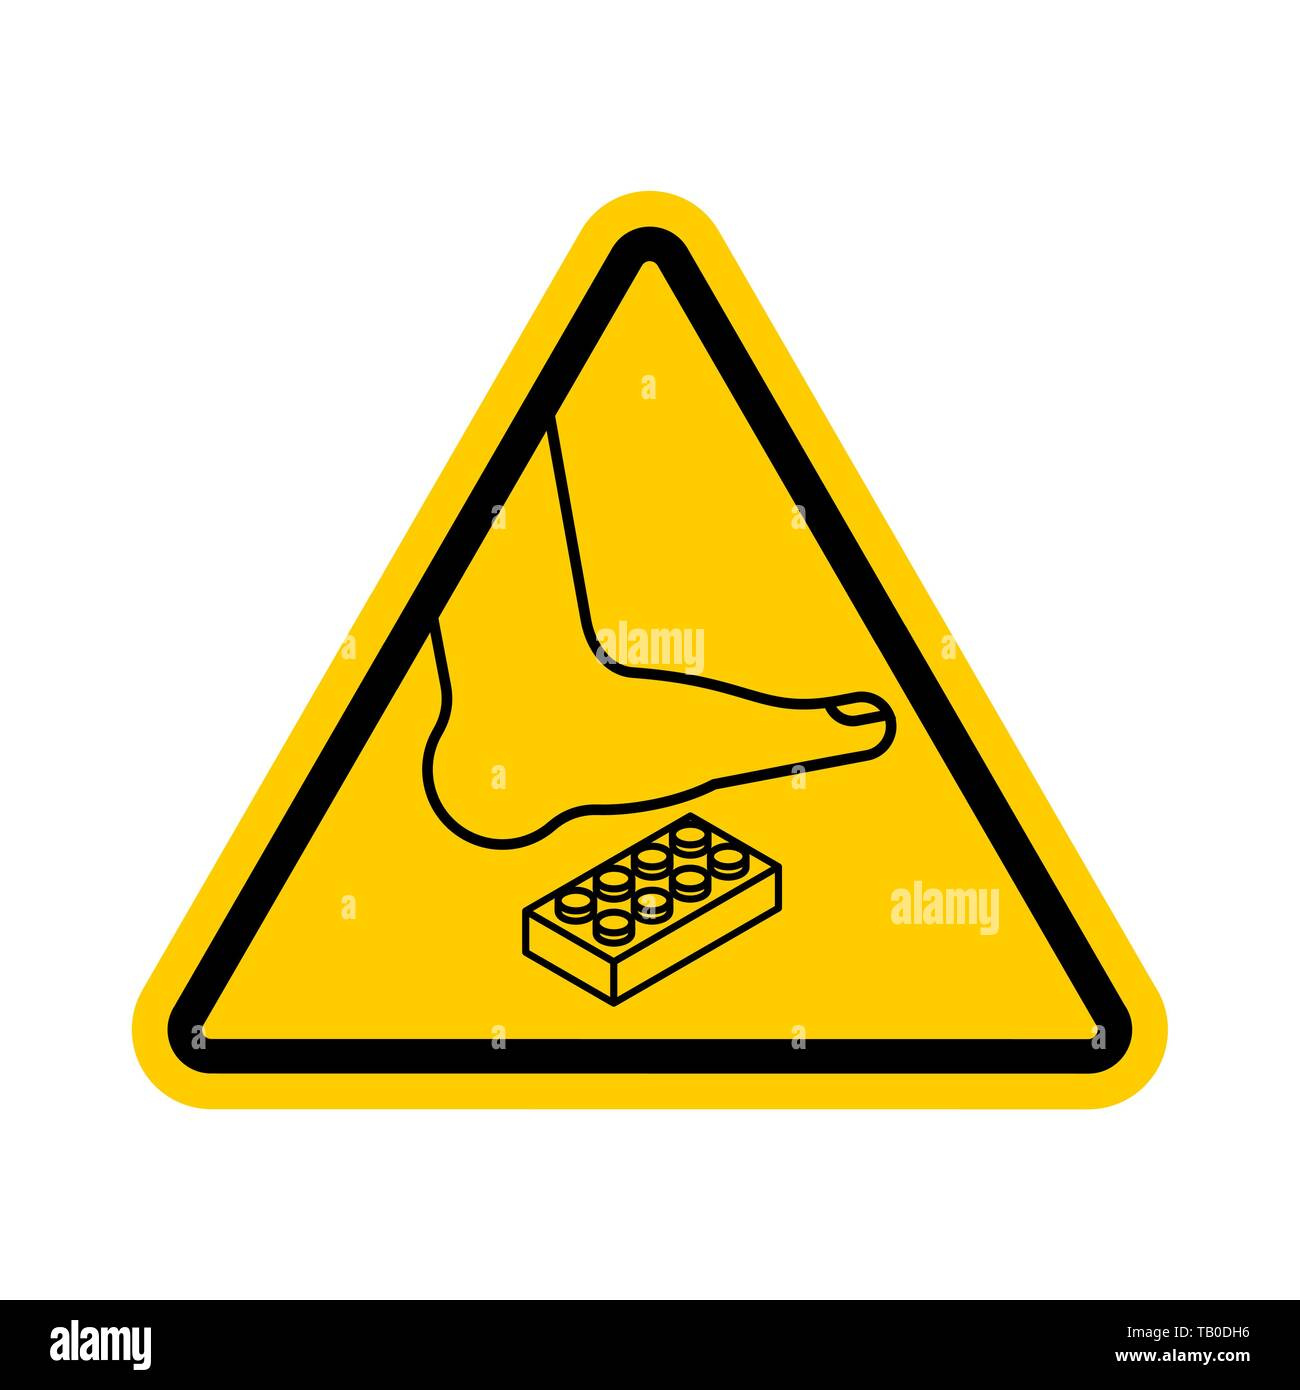 Attention Plastic construction Detail  Warning yellow road sign